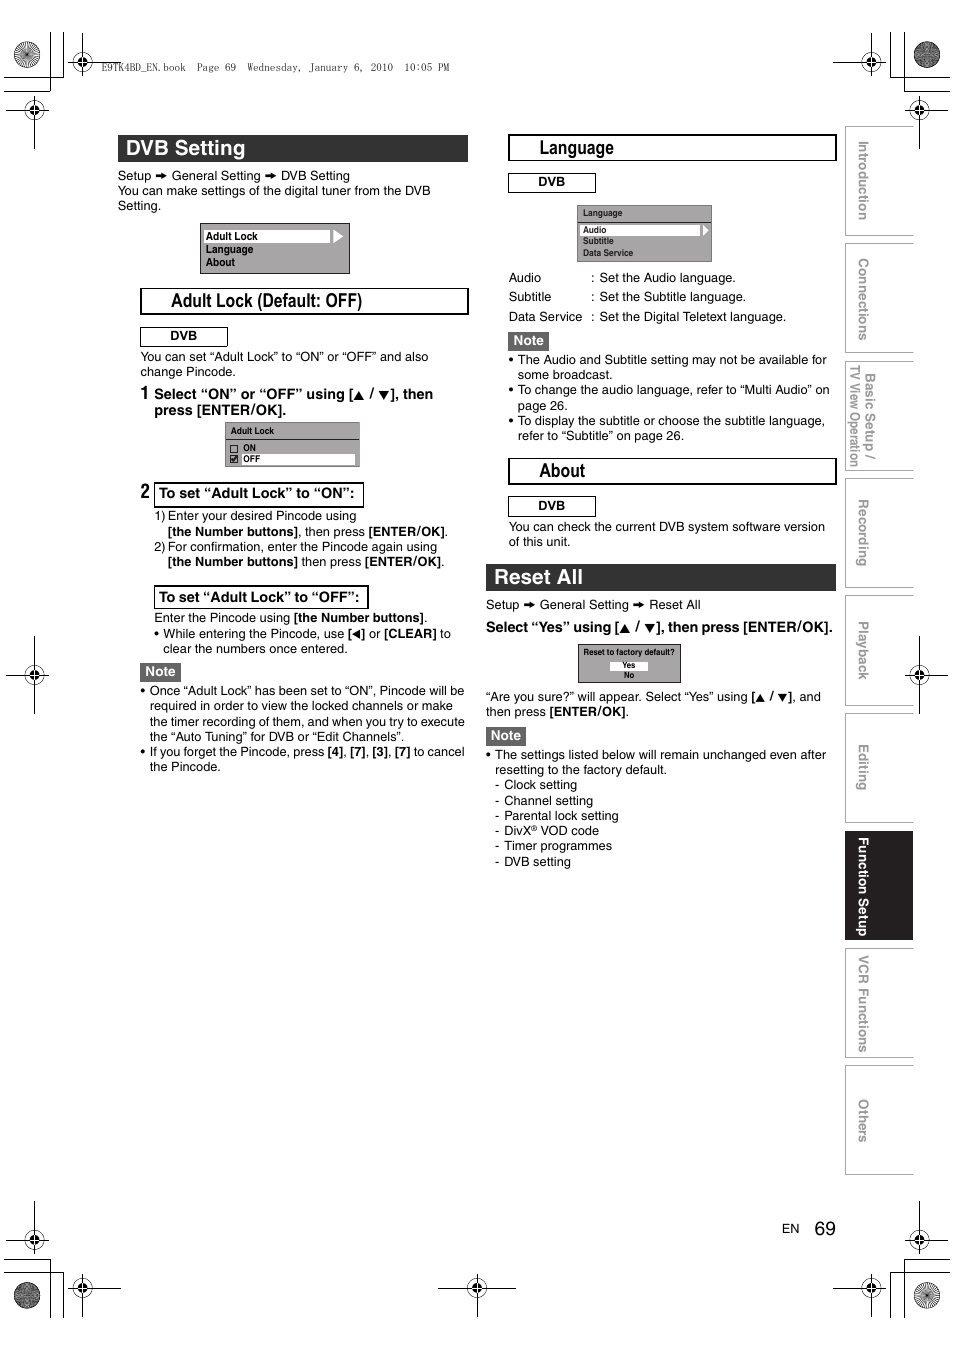 Dvb setting, Reset all, A adult lock (default: off)   Toshiba DVR20 User  Manual   Page 69 / 80